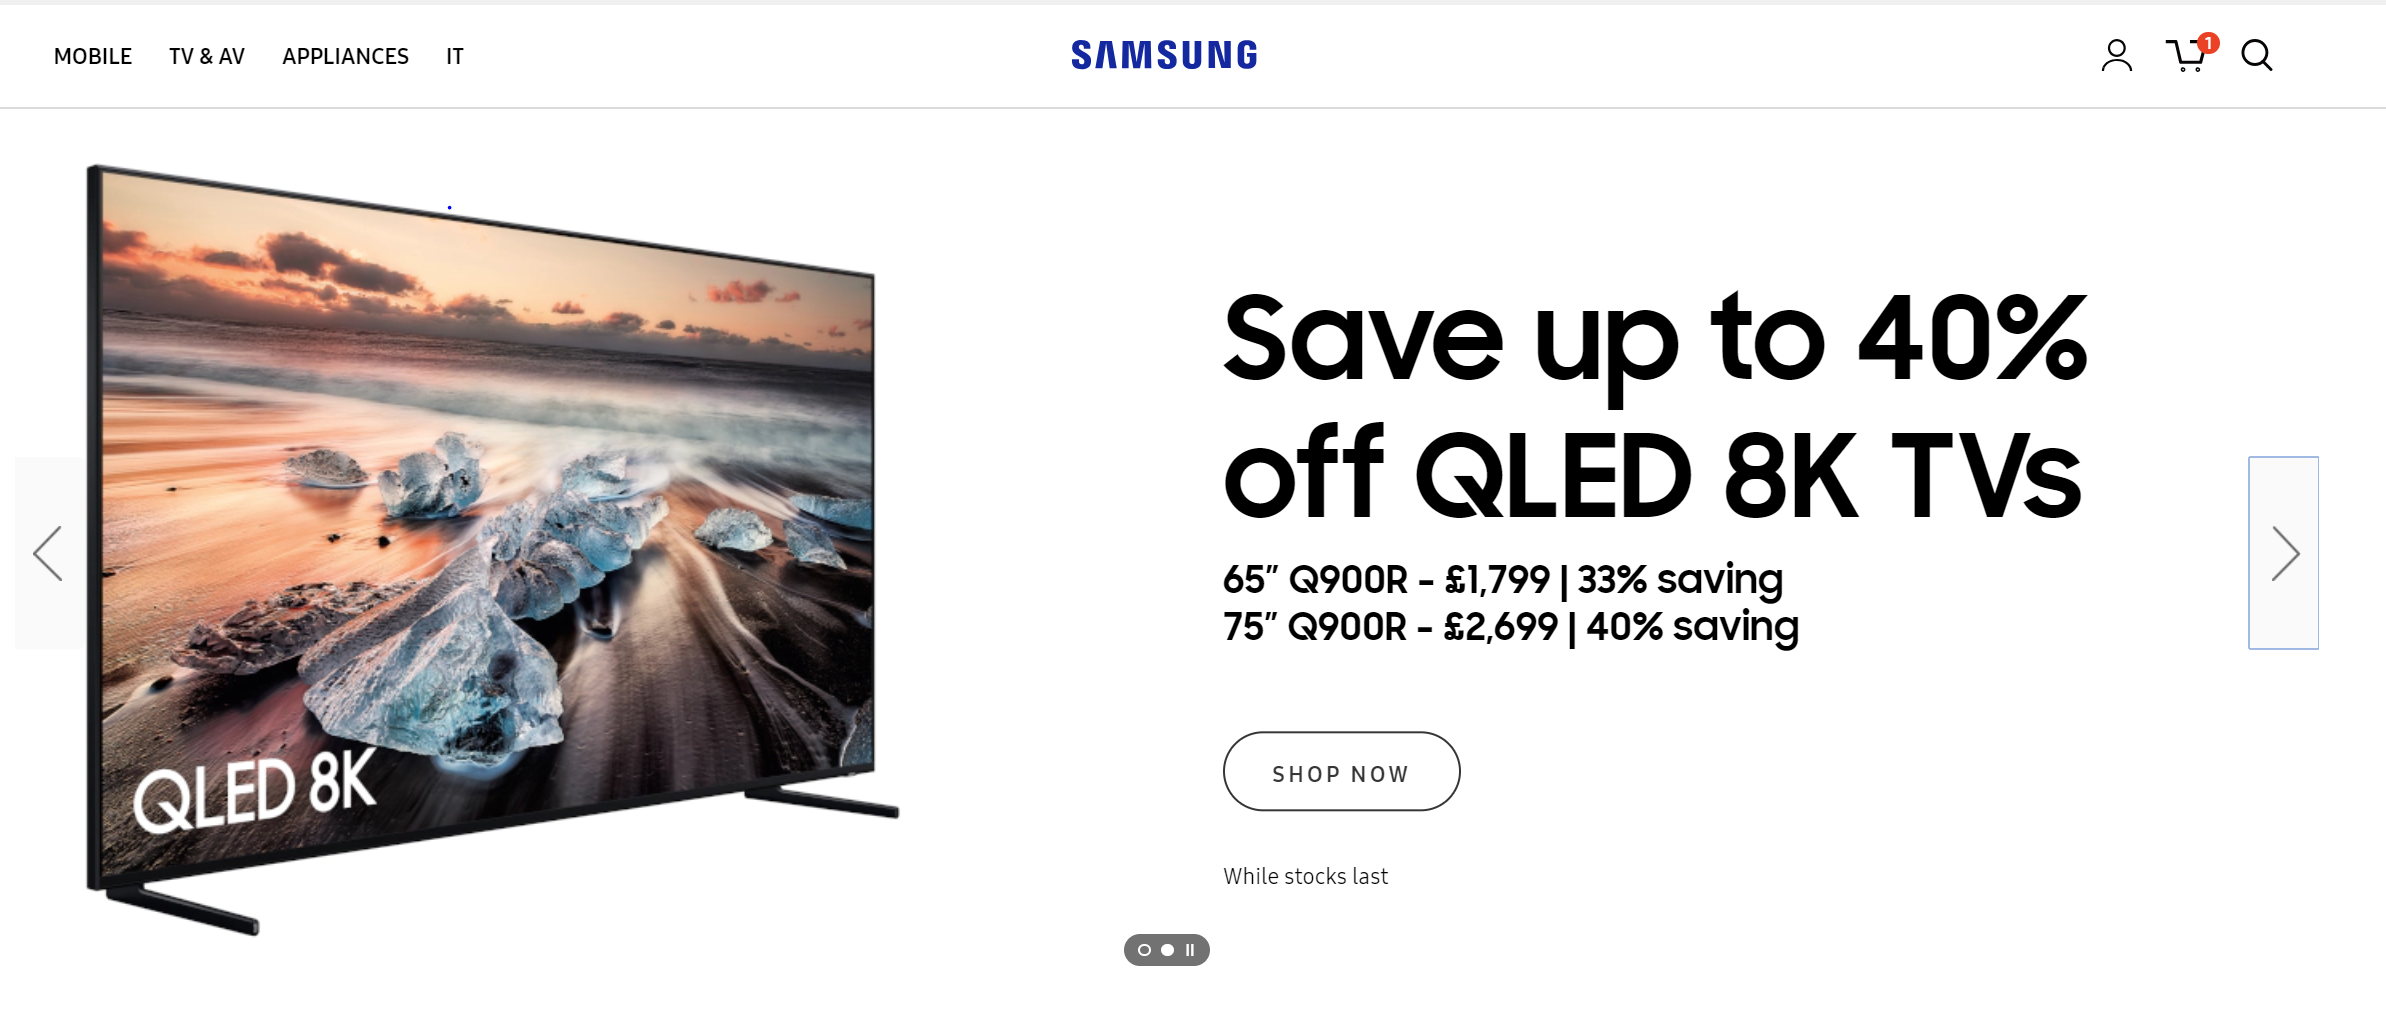 My Perks At Work >> Samsung Q900r 8k Qled Owners Thread Page 22 Avforums